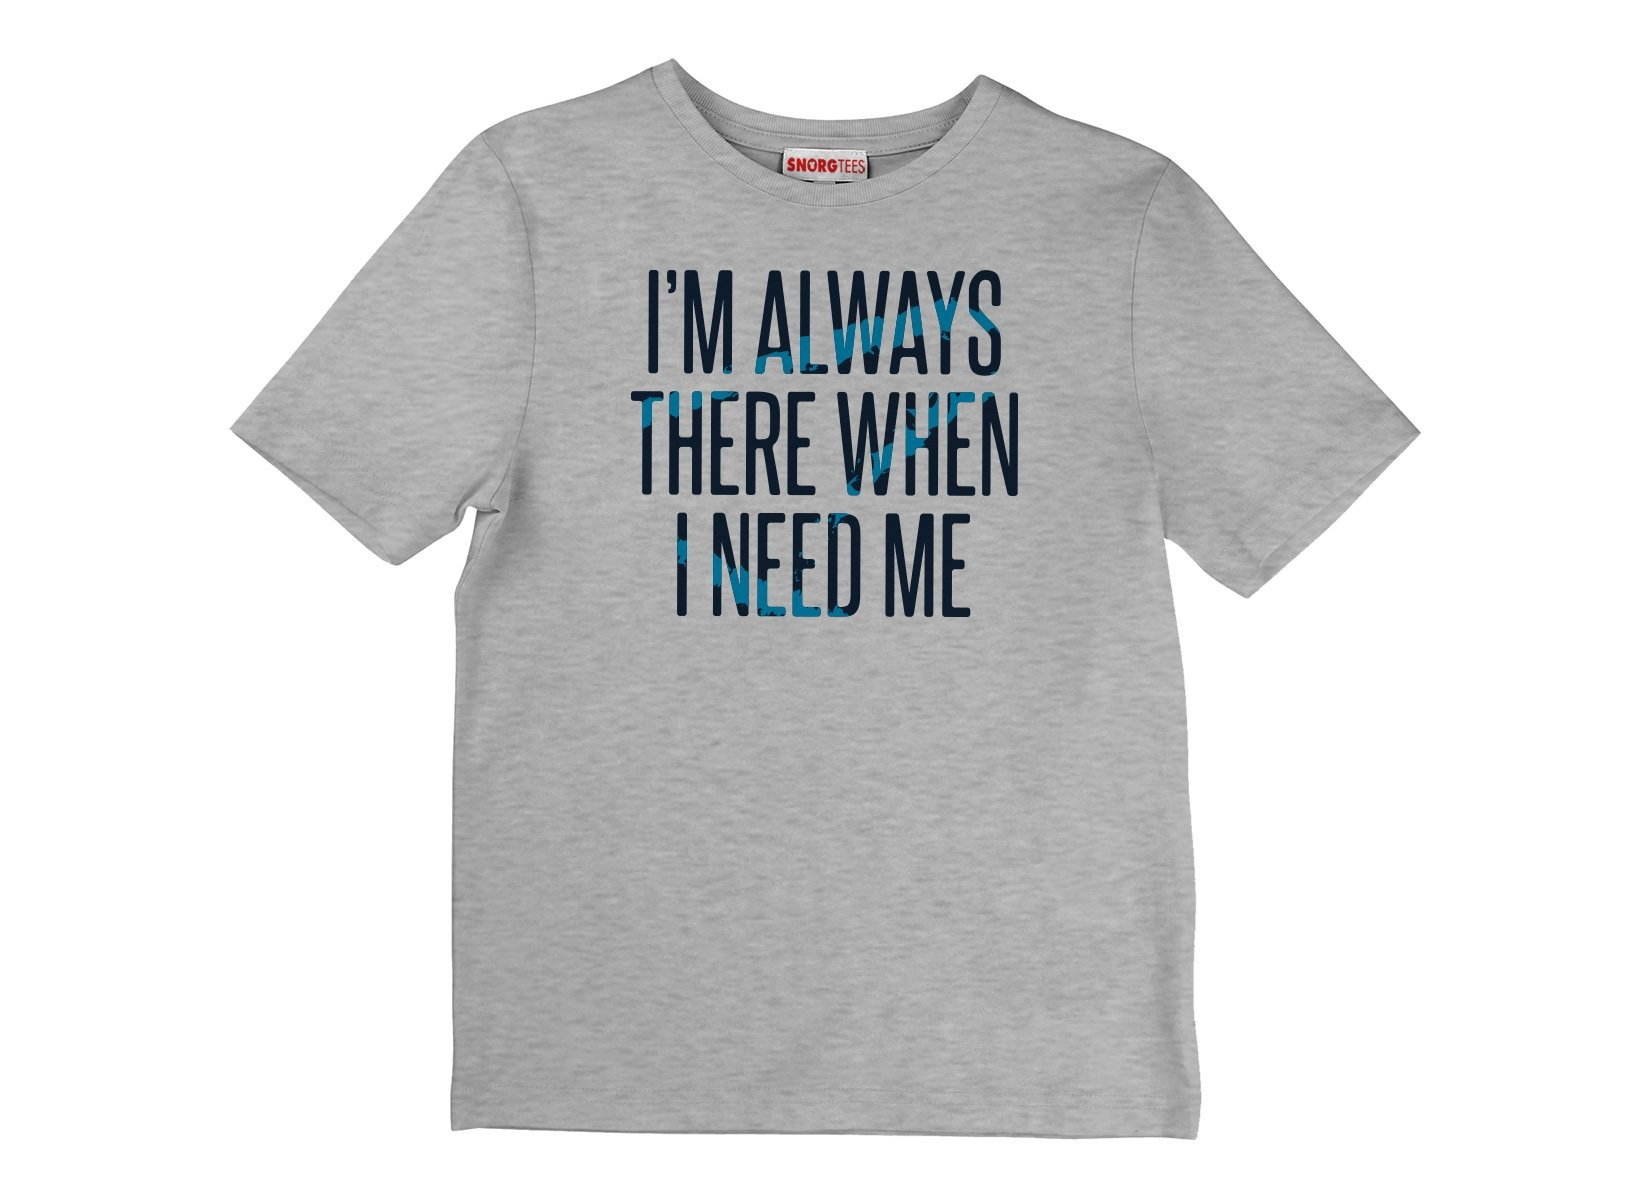 I'm Always There When I Need Me on Kids T-Shirt